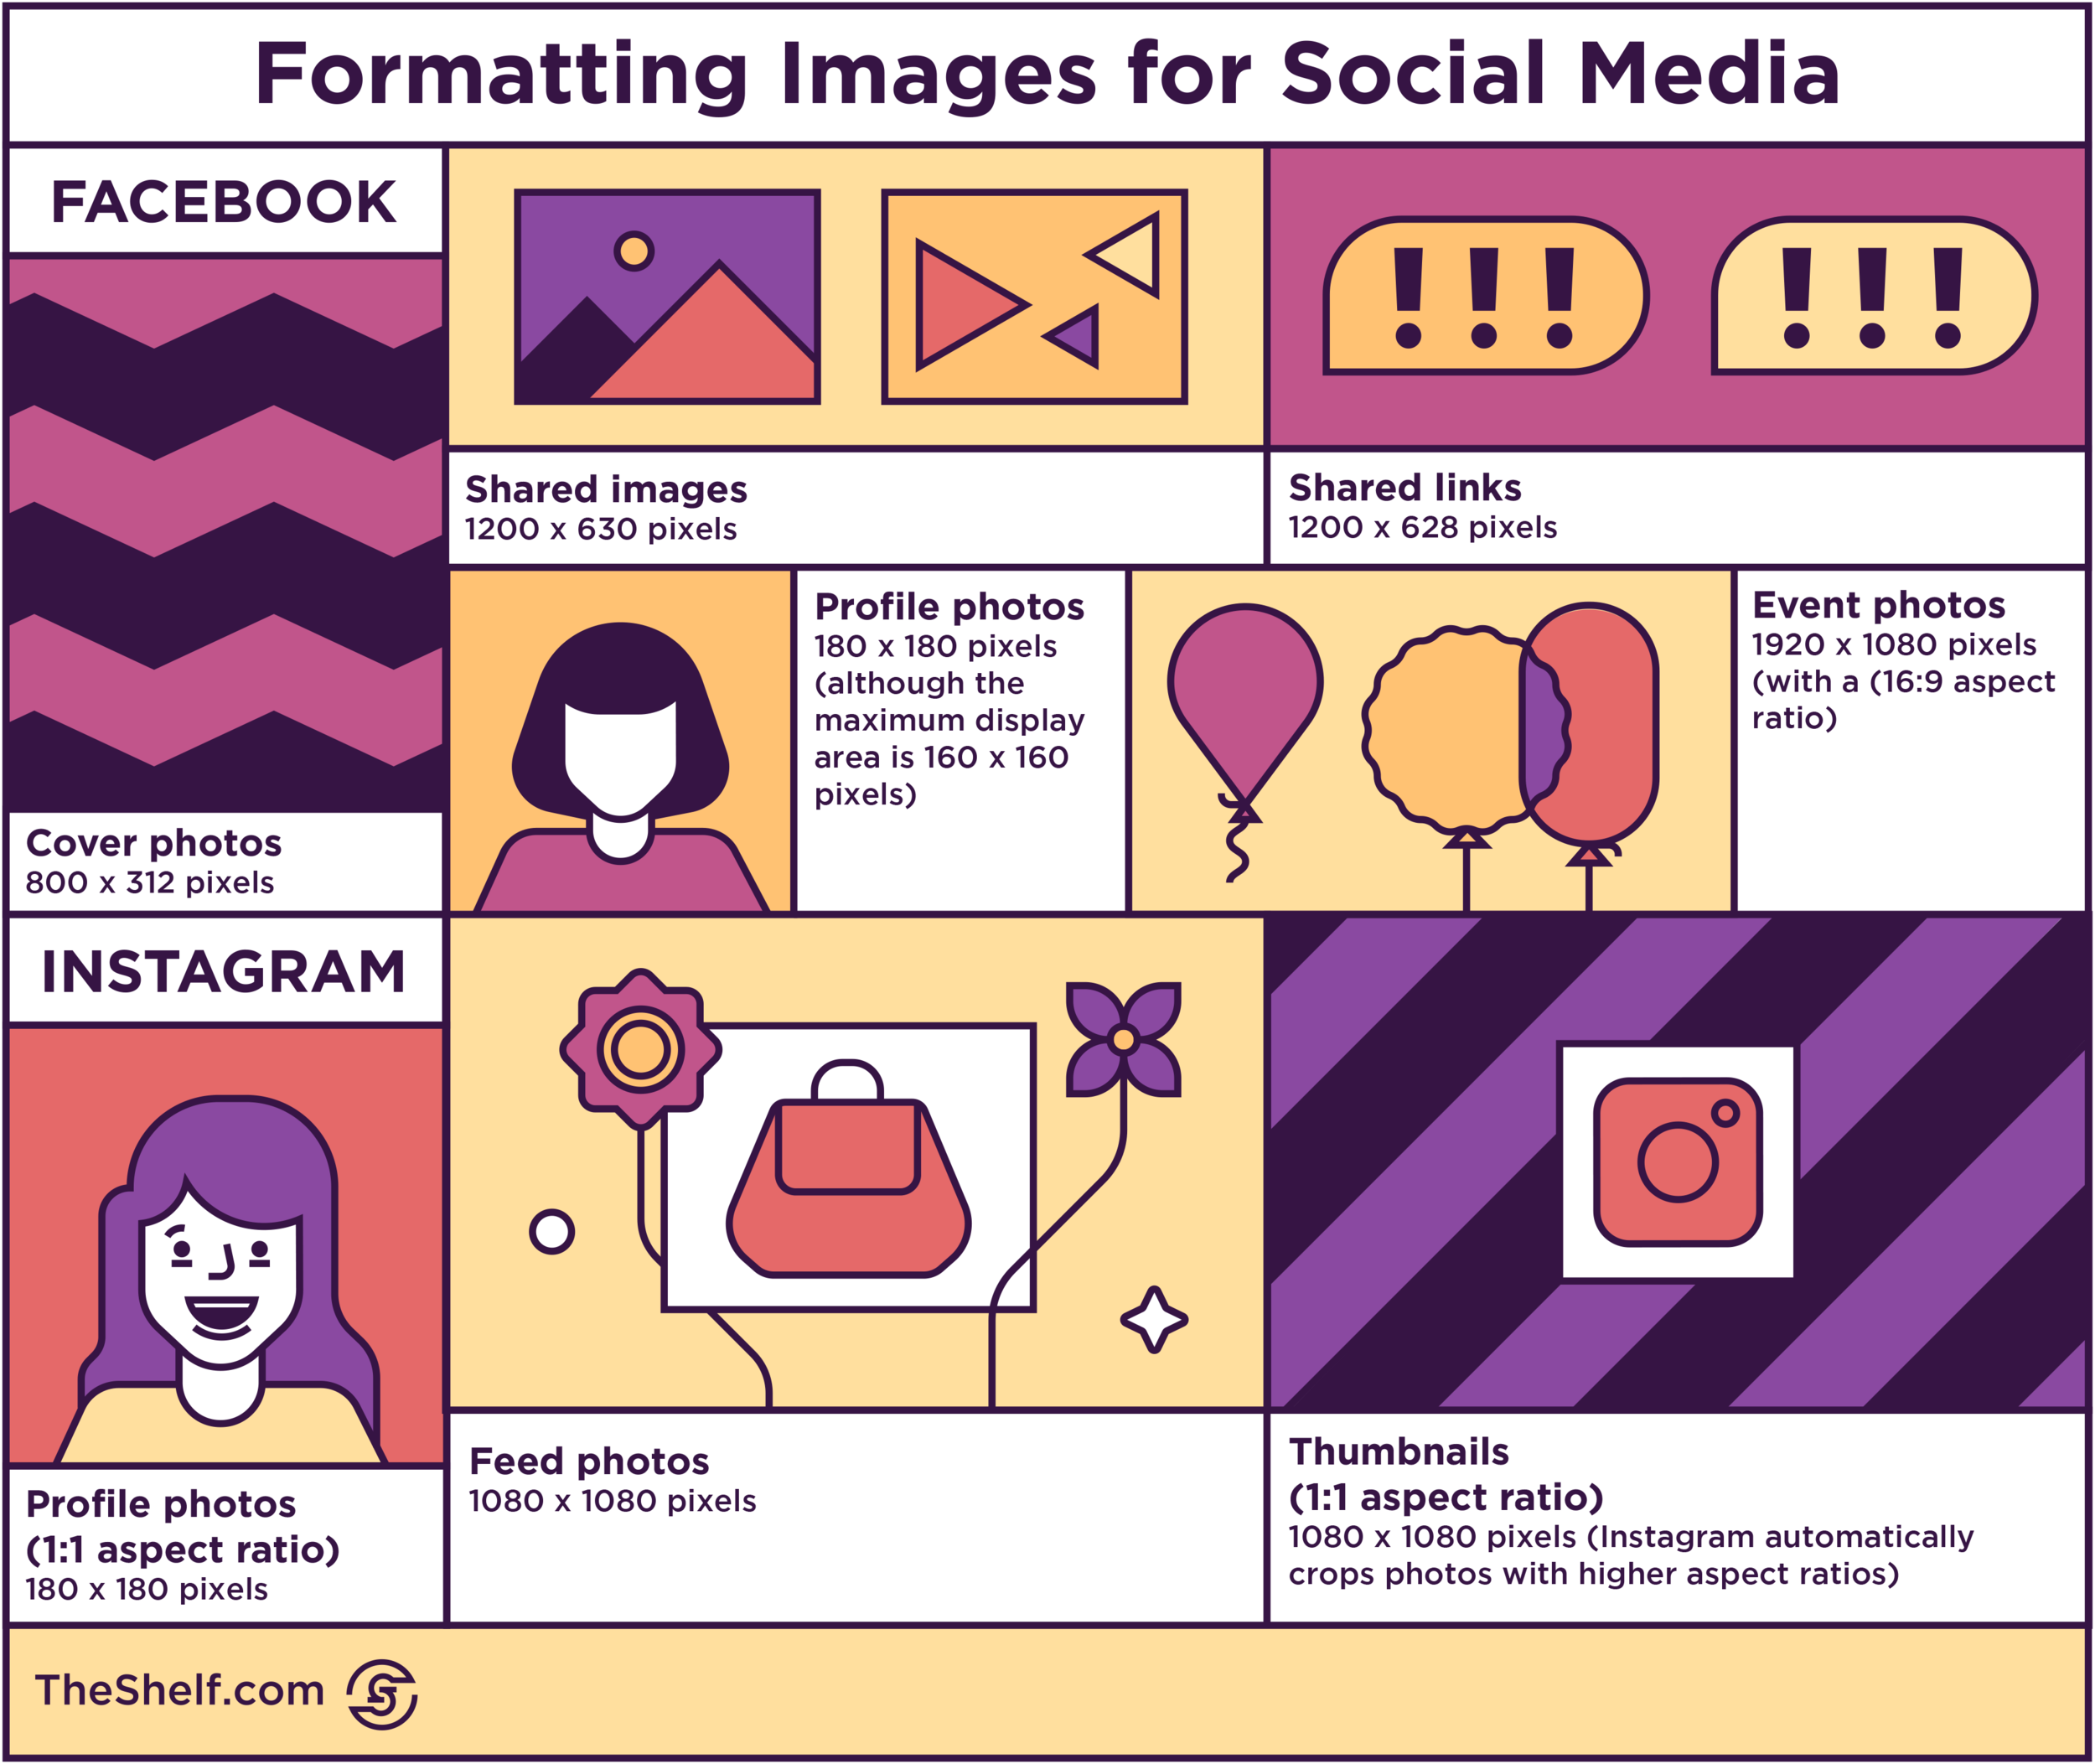 #75 Guide to Using Images_2.png